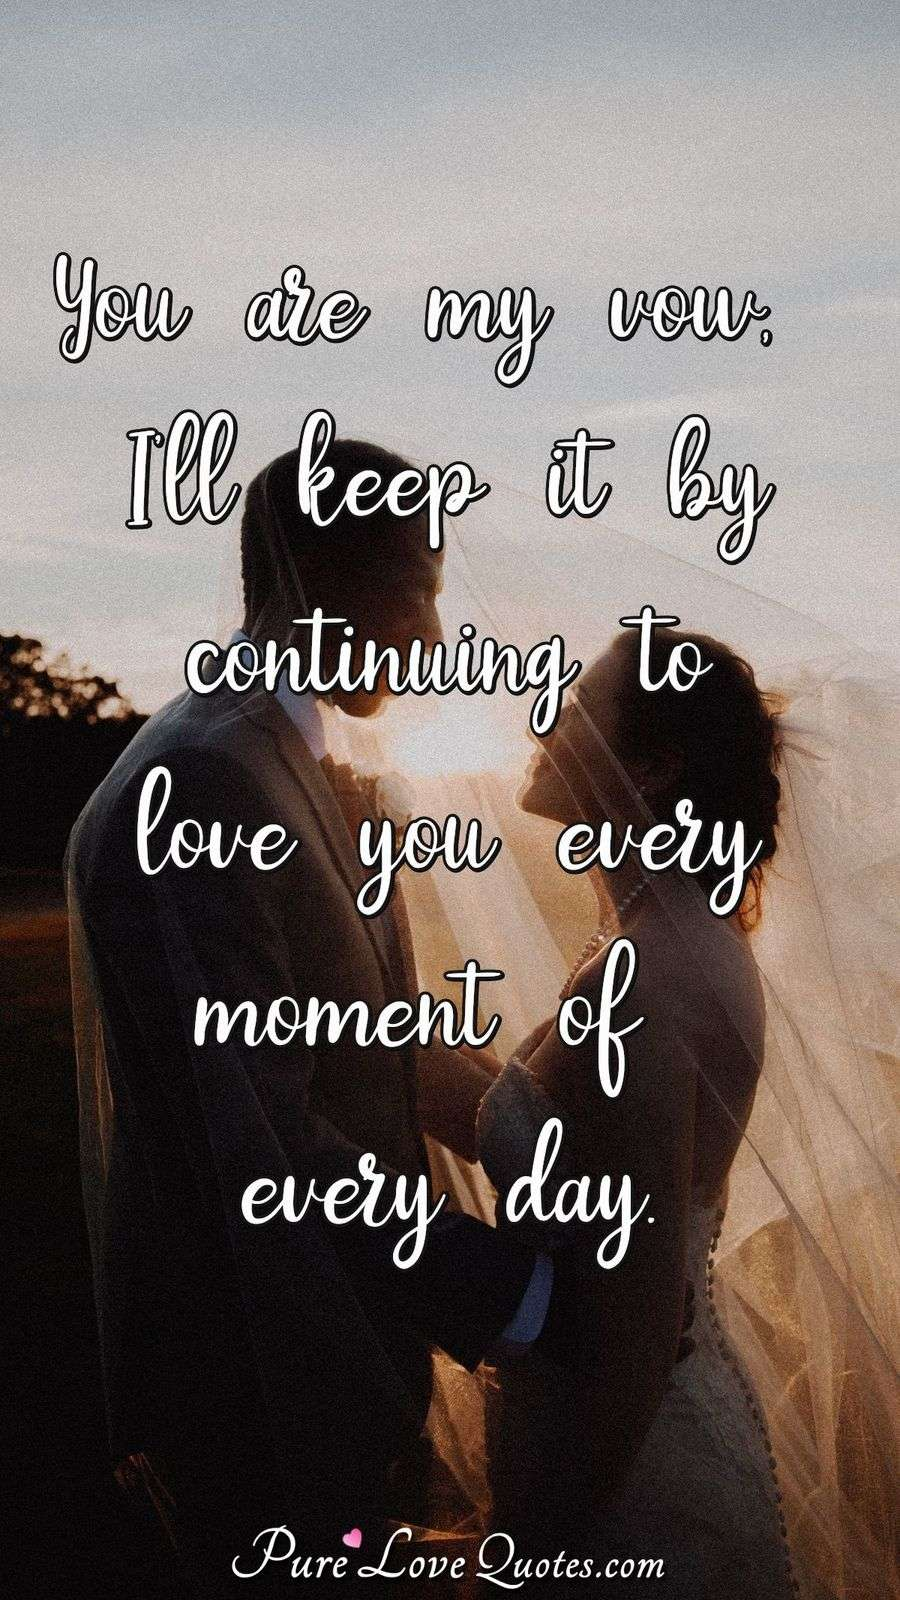 You are my vow, I'll keep it by continuing to love you every moment of every day. - Anonymous